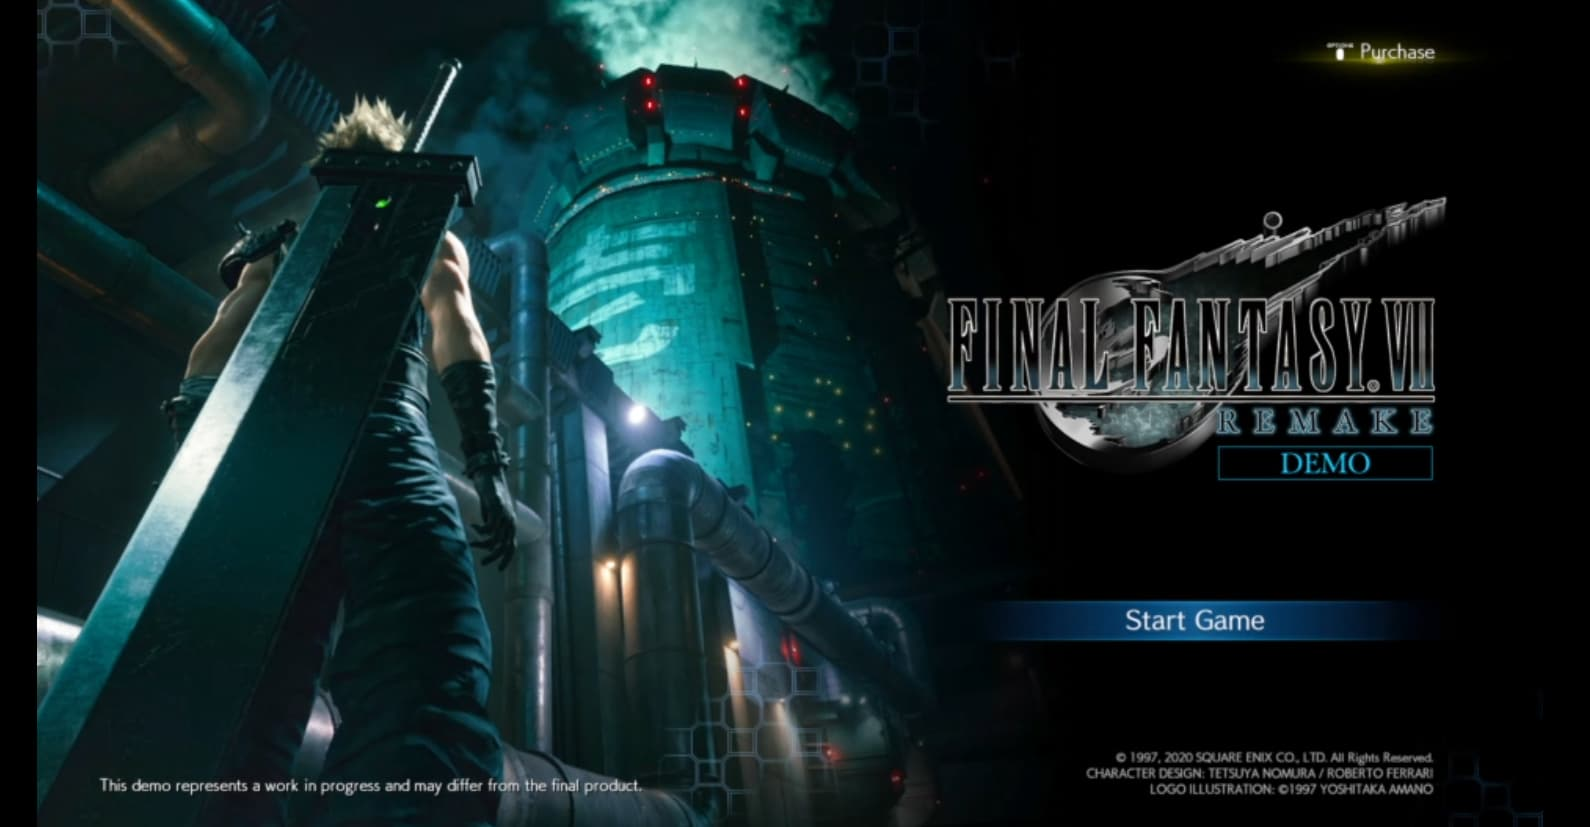 Can You Change The Language In Final Fantasy Vii Remake Demo